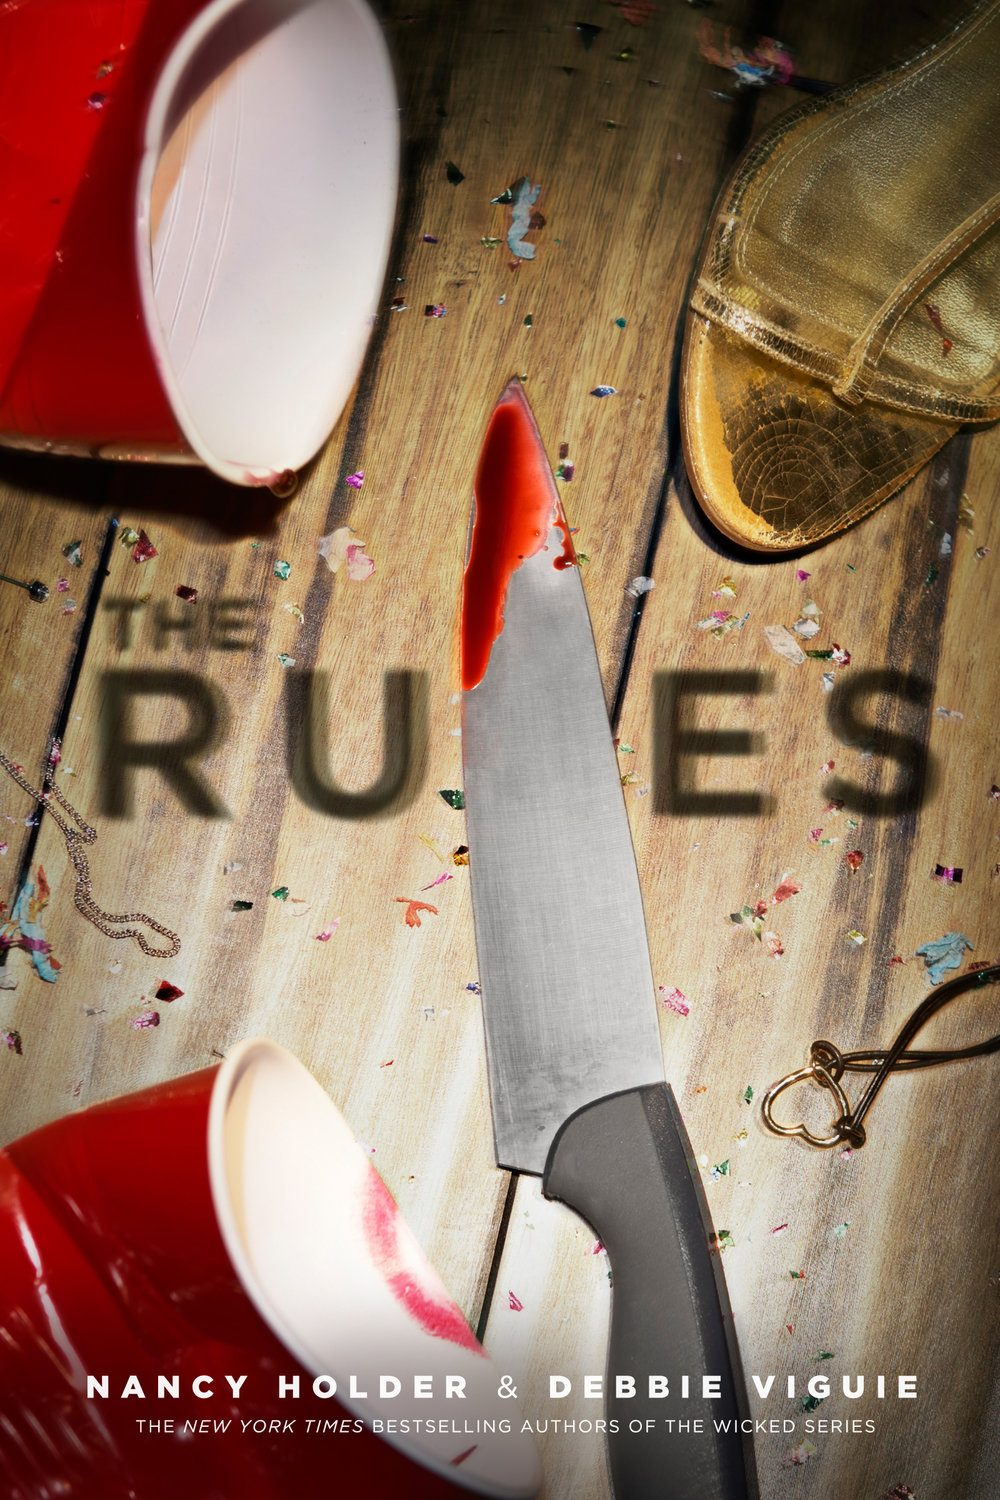 The Rules by Nancy Holder and Debbie Viguie Designed by Ben Mautner for Knopf Art Directed by Alison Impey